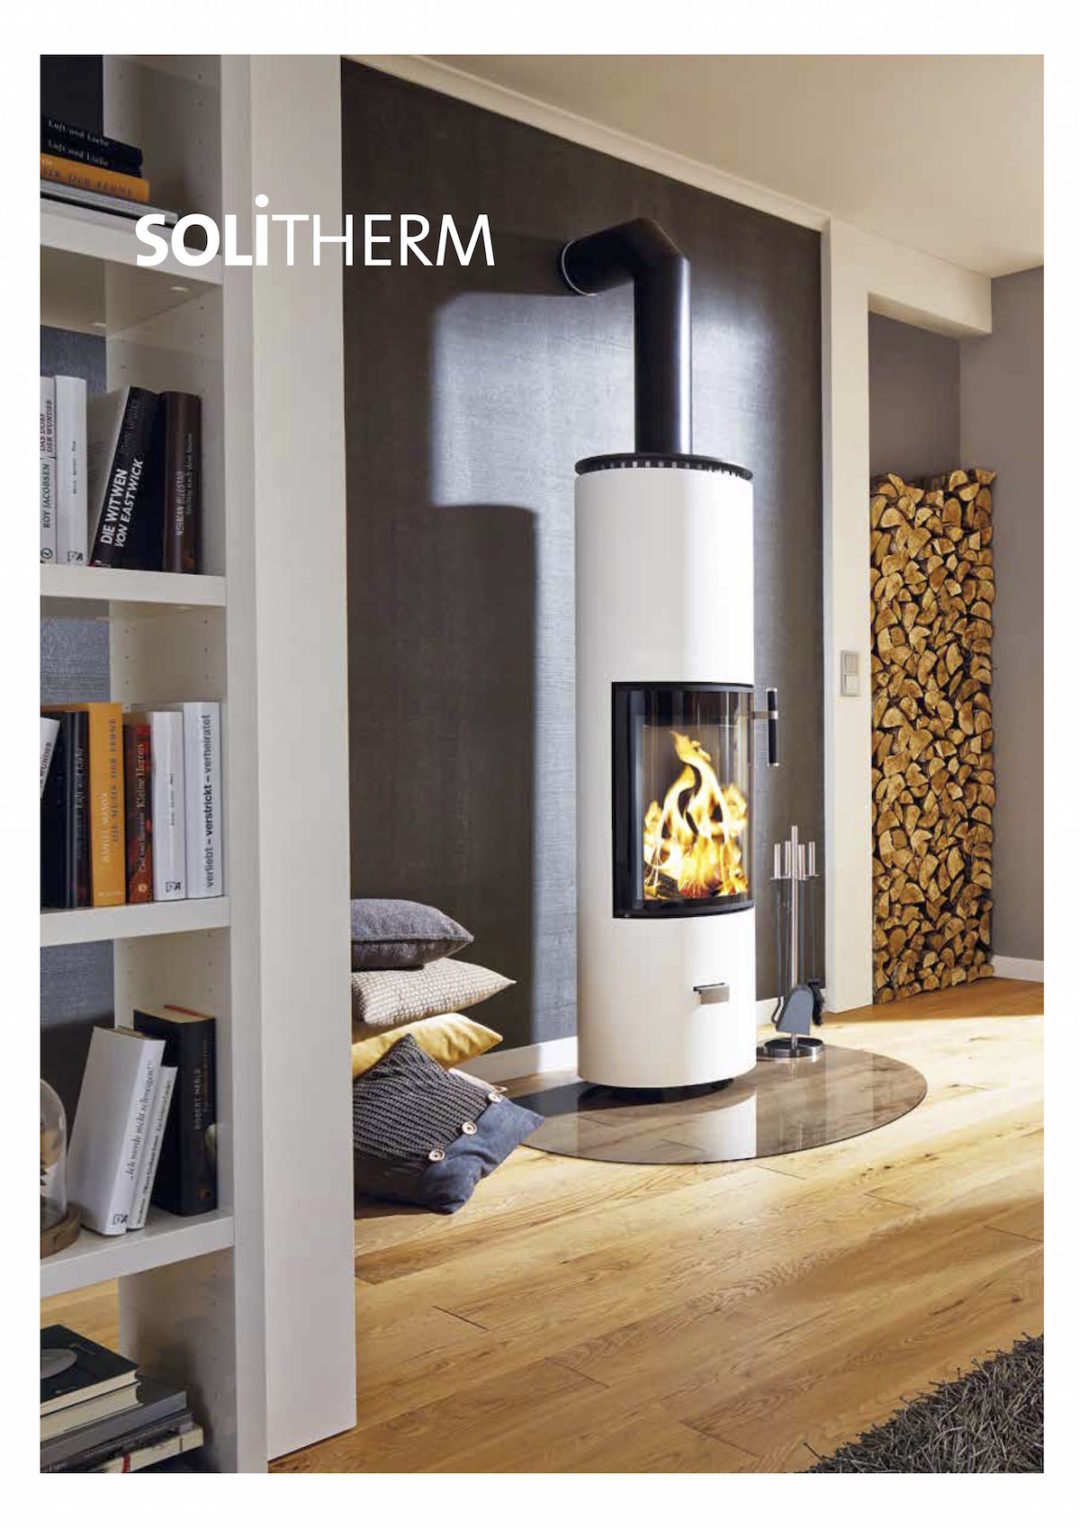 Solitherm